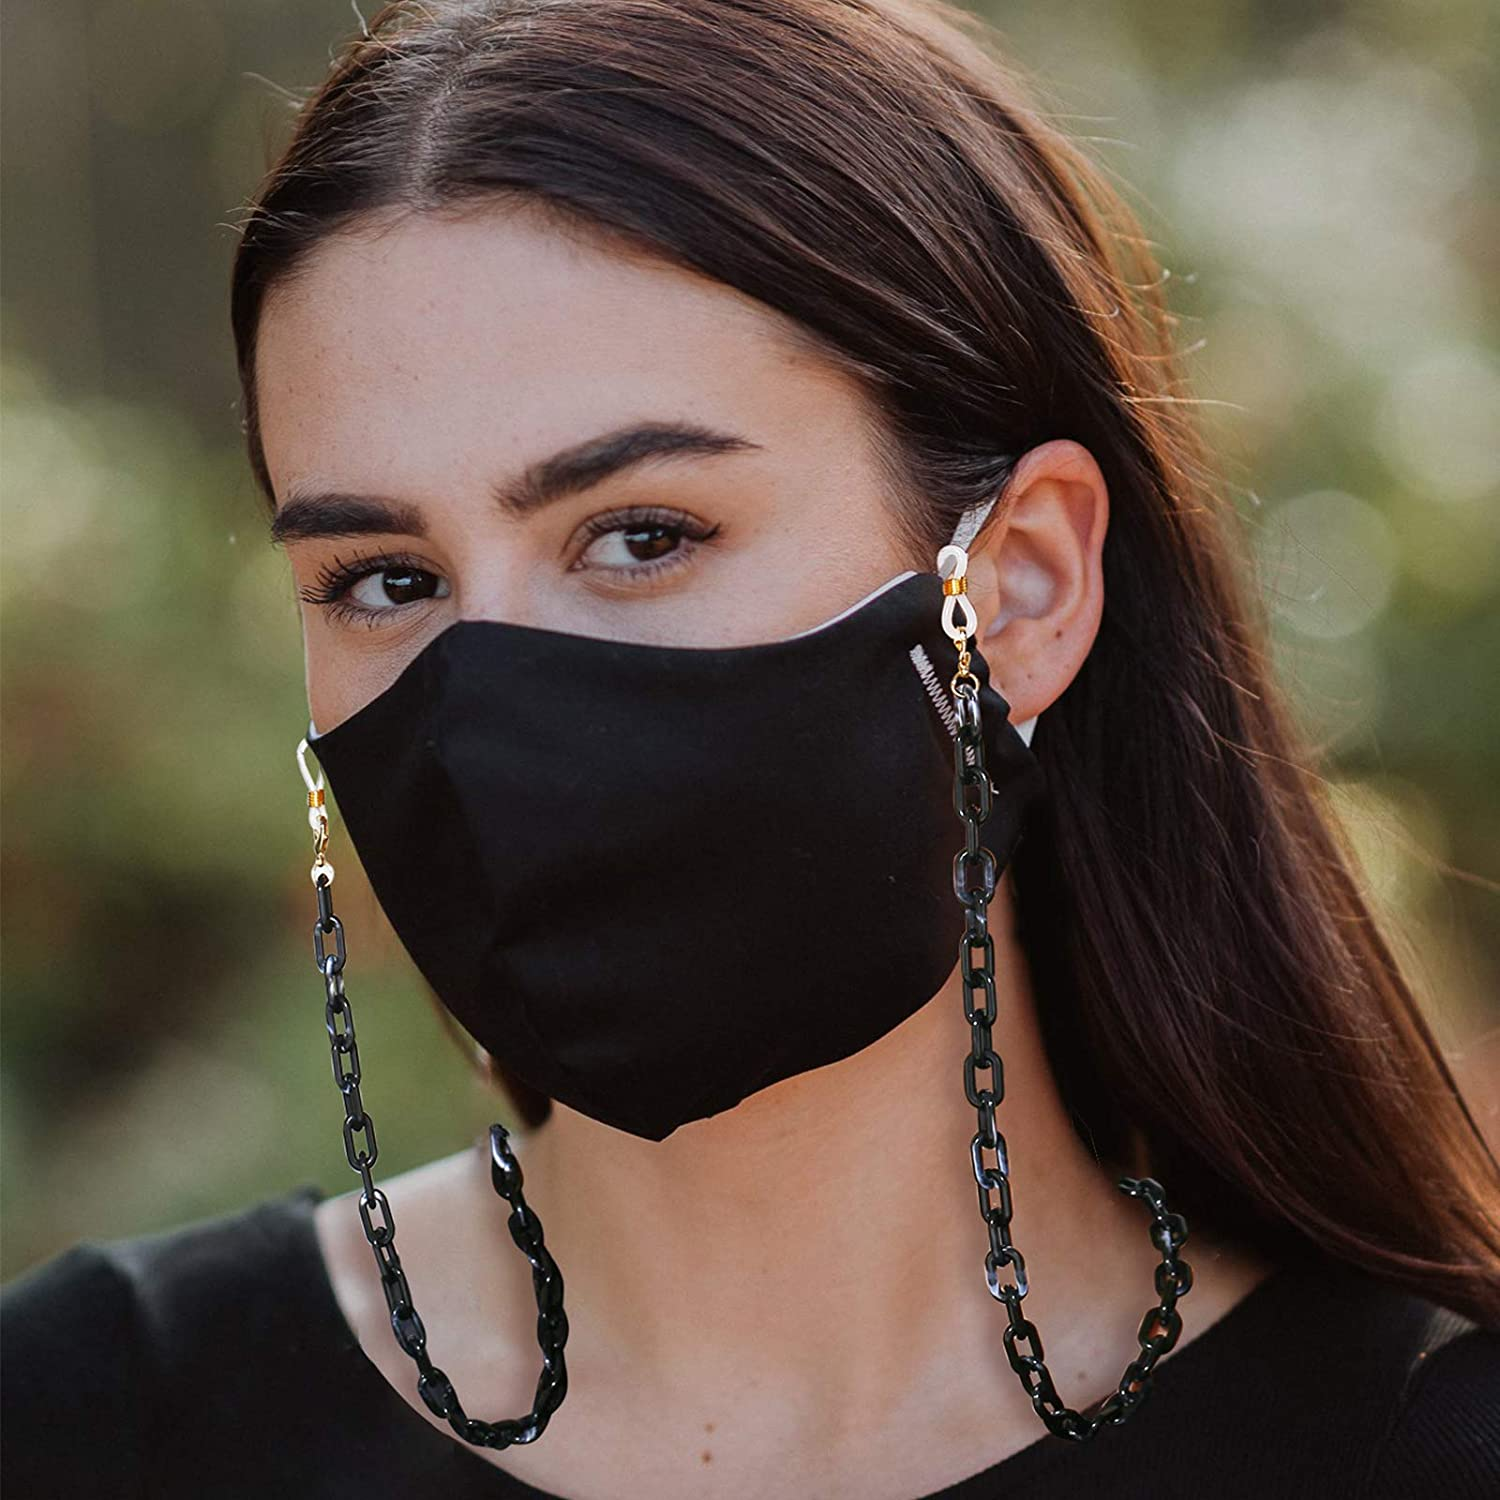 17KM 6 Pcs Mask and Glasses Chain Lanyards for Women Unique Anti-Lost Acetate Acrylic Face Mask Chain Holder with Clips Around Neck for Men Adults Girls Kids